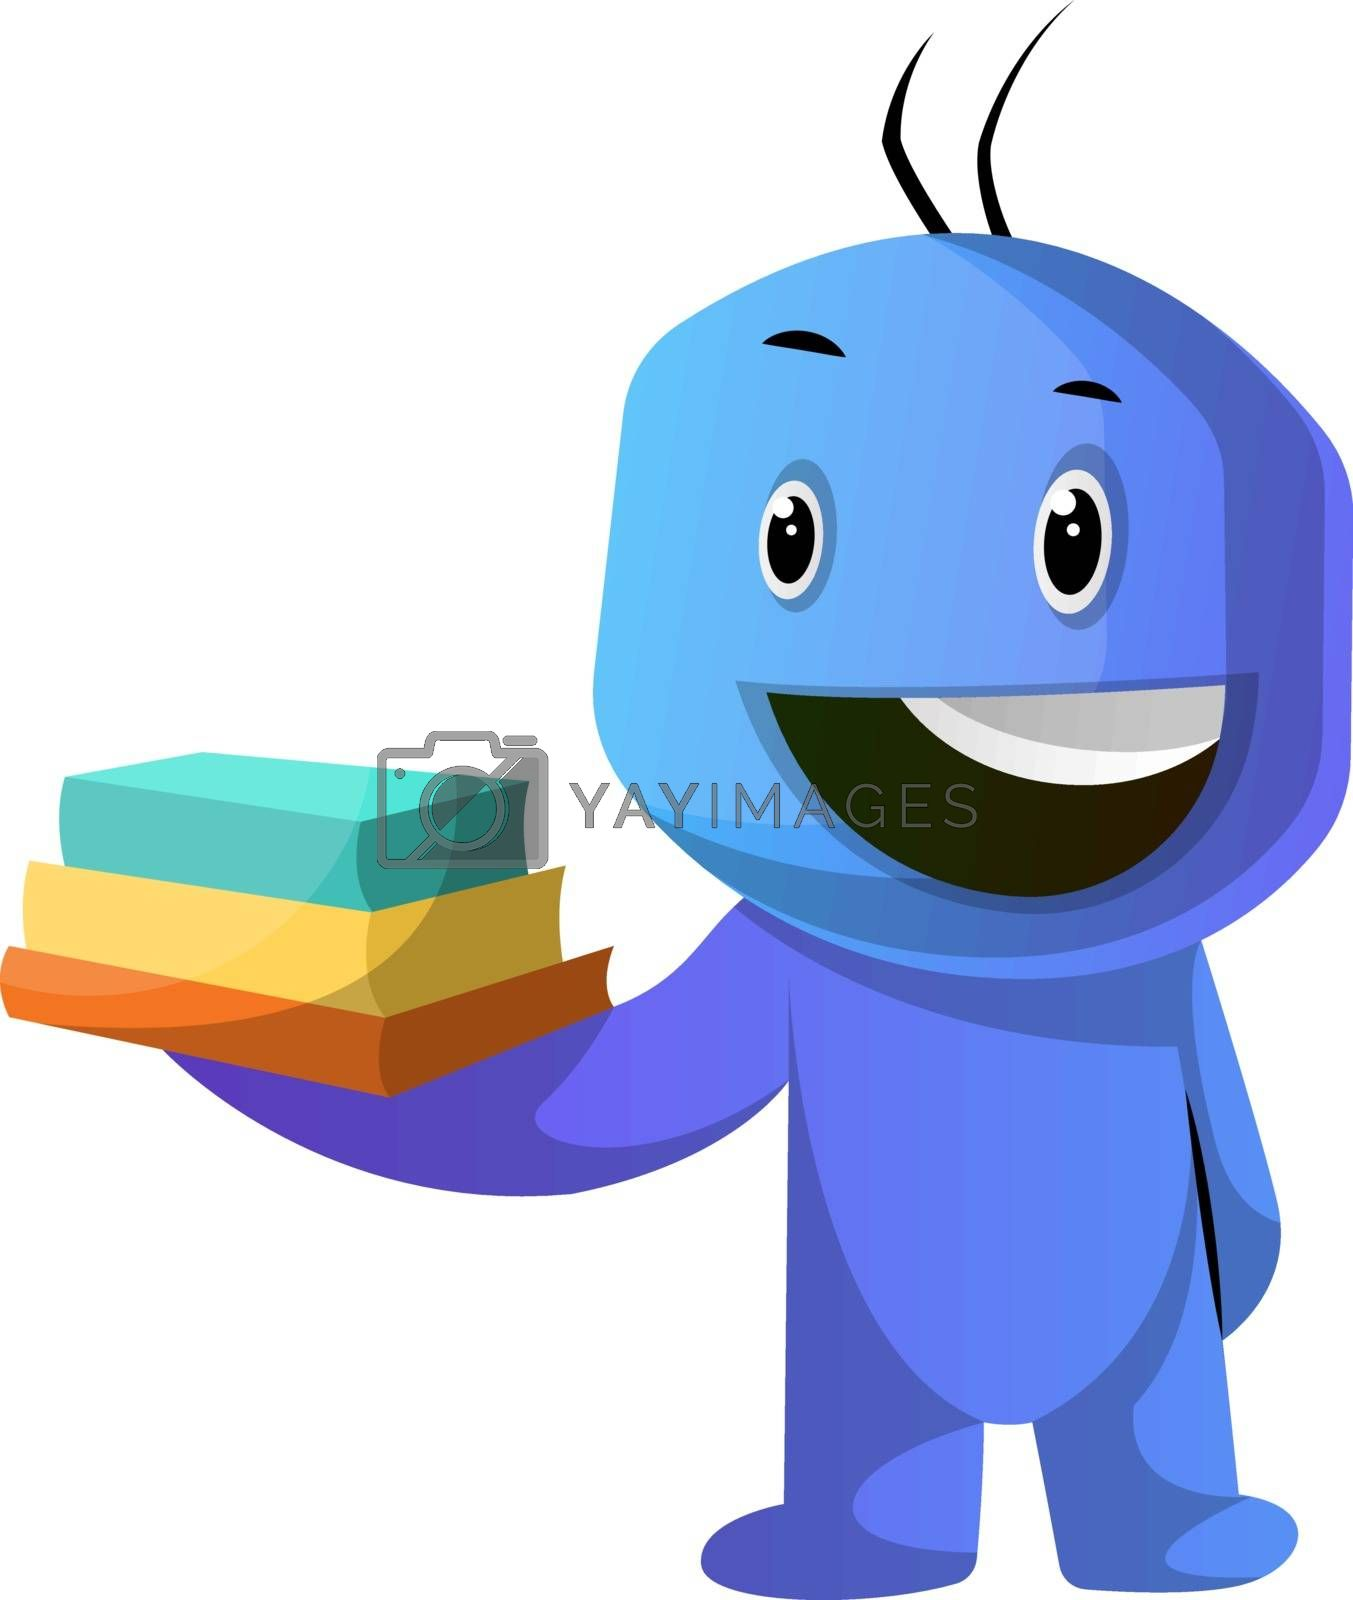 Royalty free image of Blue cartoon caracter holding books illustration vector on white by Morphart